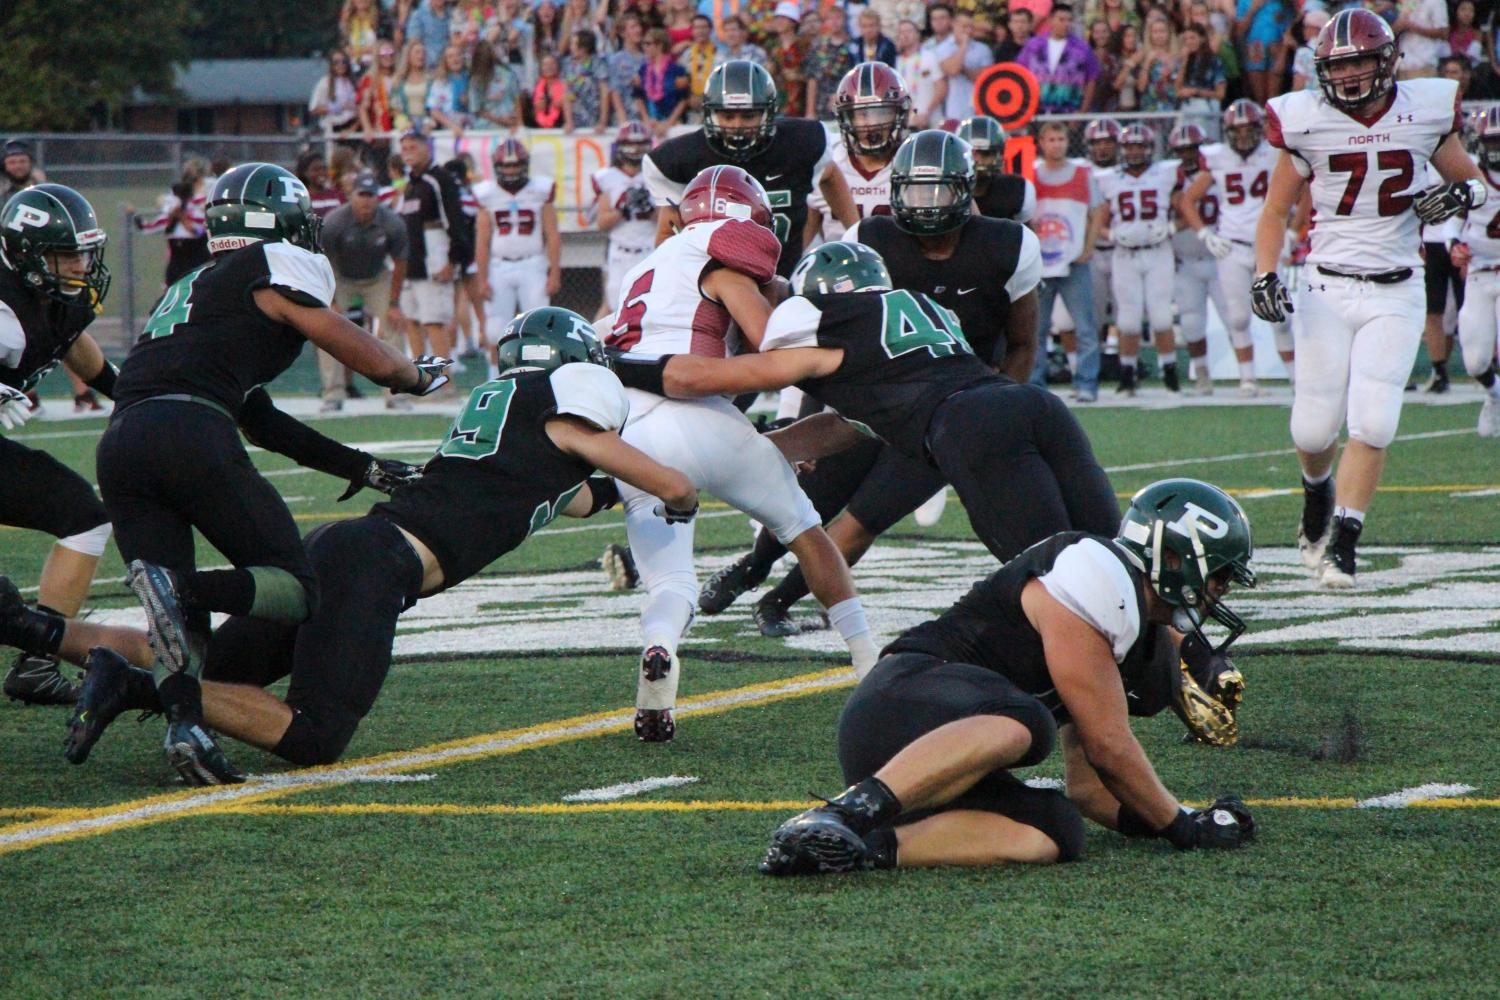 Ethan Dominguez, junior,  makes a succesful tackle against Plainfield North's player in their first game on Friday,  Sept. 1.  The wildcats lost 7-21.